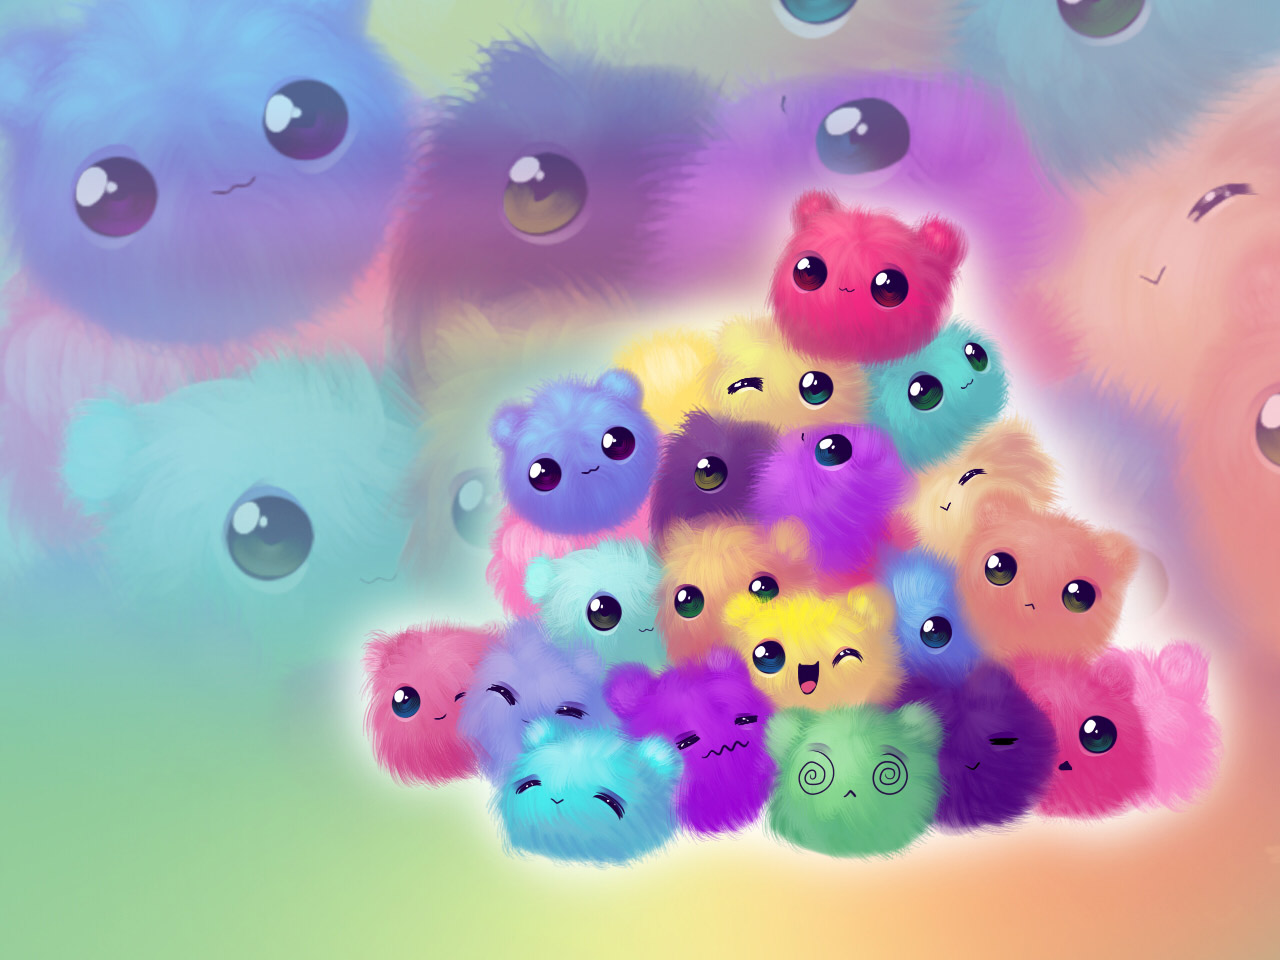 Cute Wallpapers Cute as Kawaii Can Be 1280x960